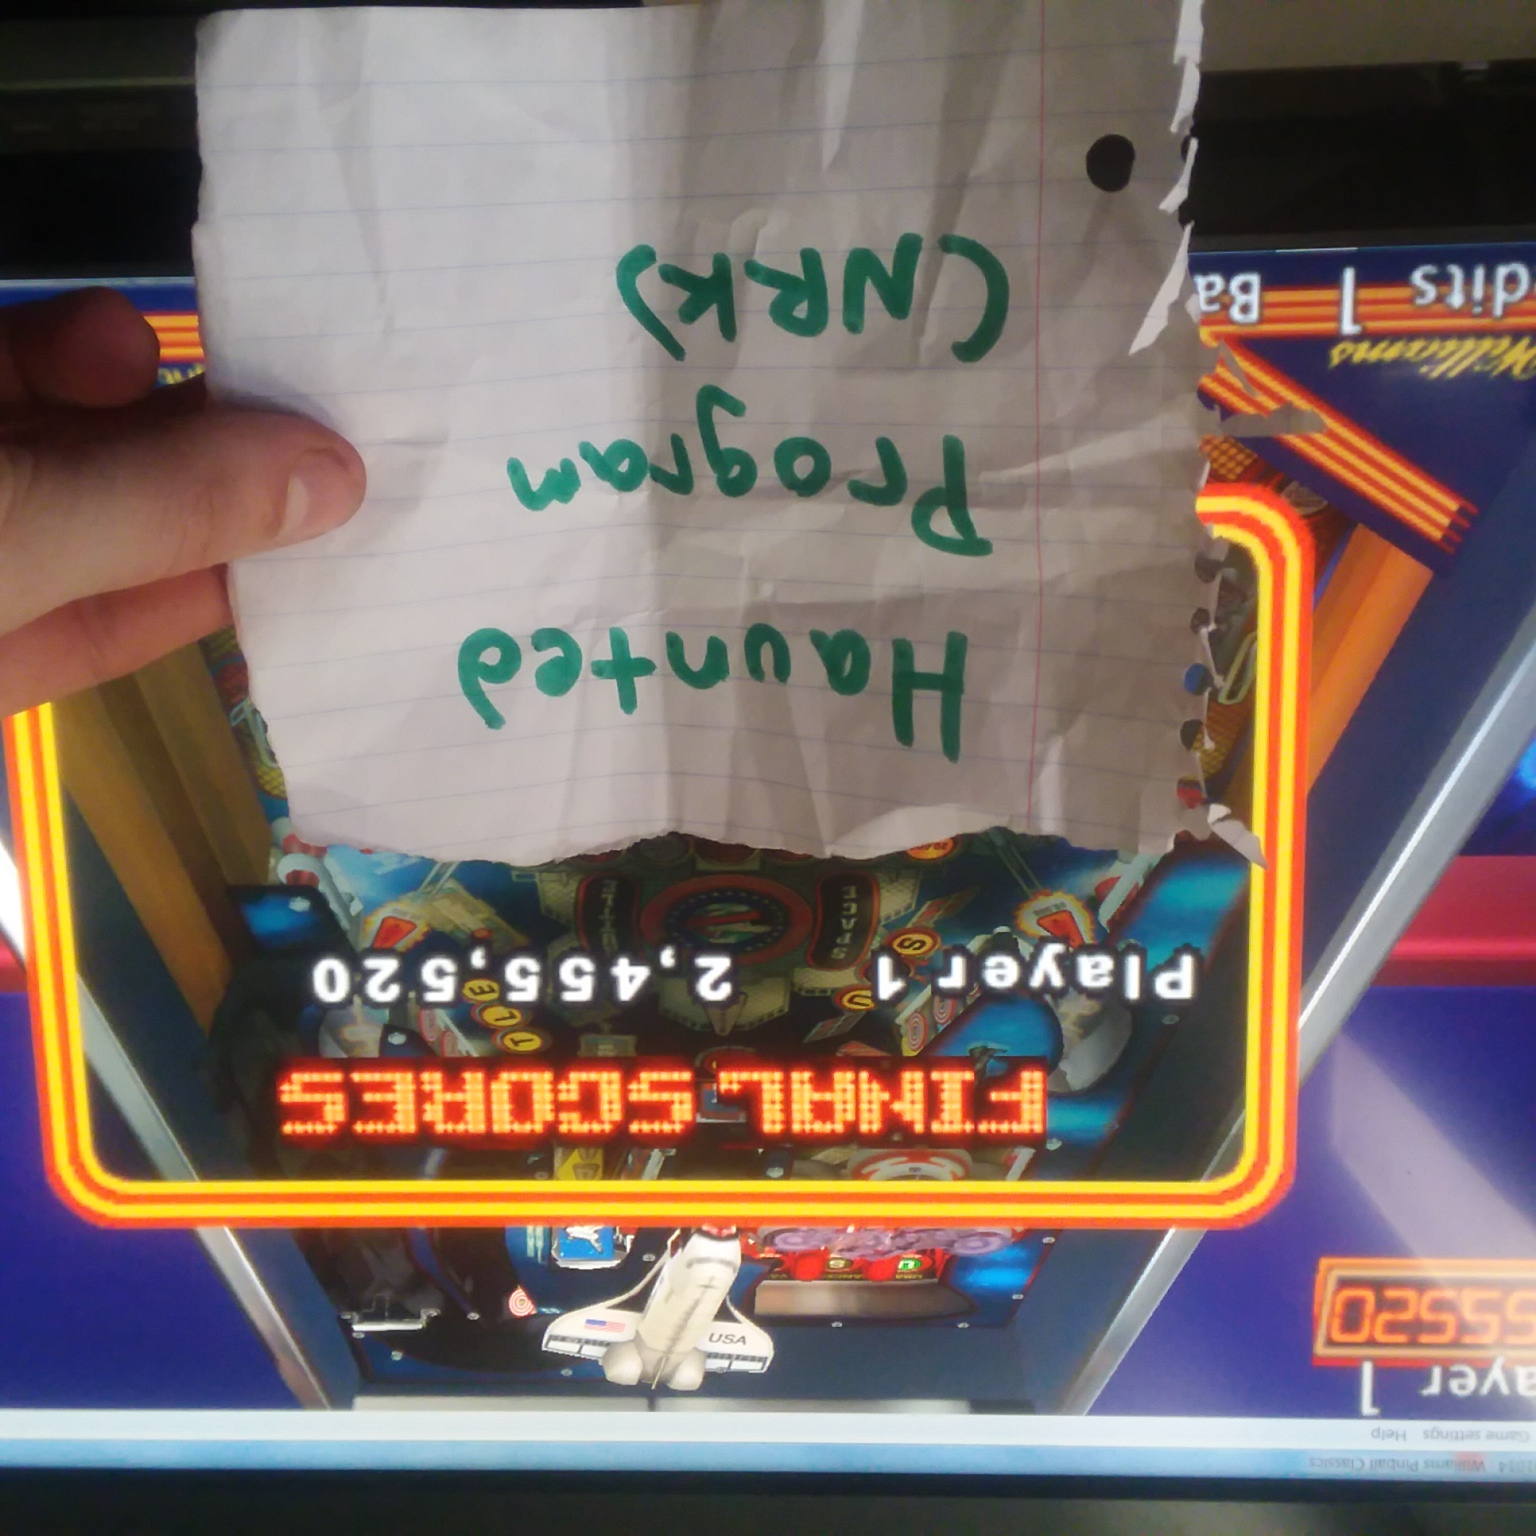 Hauntedprogram: Pinball Hall Of Fame: The Williams Collection: Space Shuttle (PSP Emulated) 2,455,520 points on 2020-10-28 15:04:11